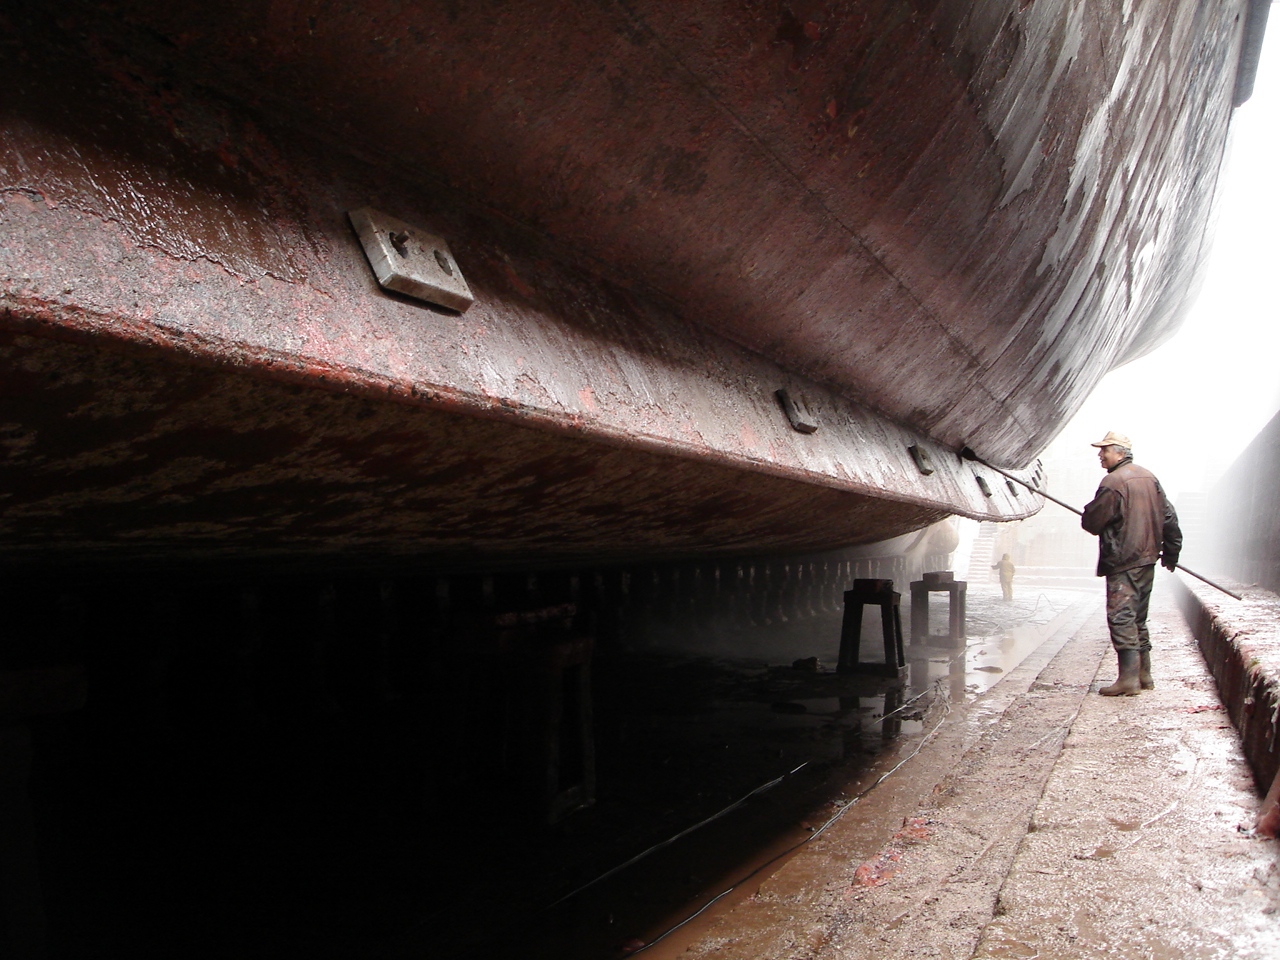 Ships hull getting cleaned in dry dock